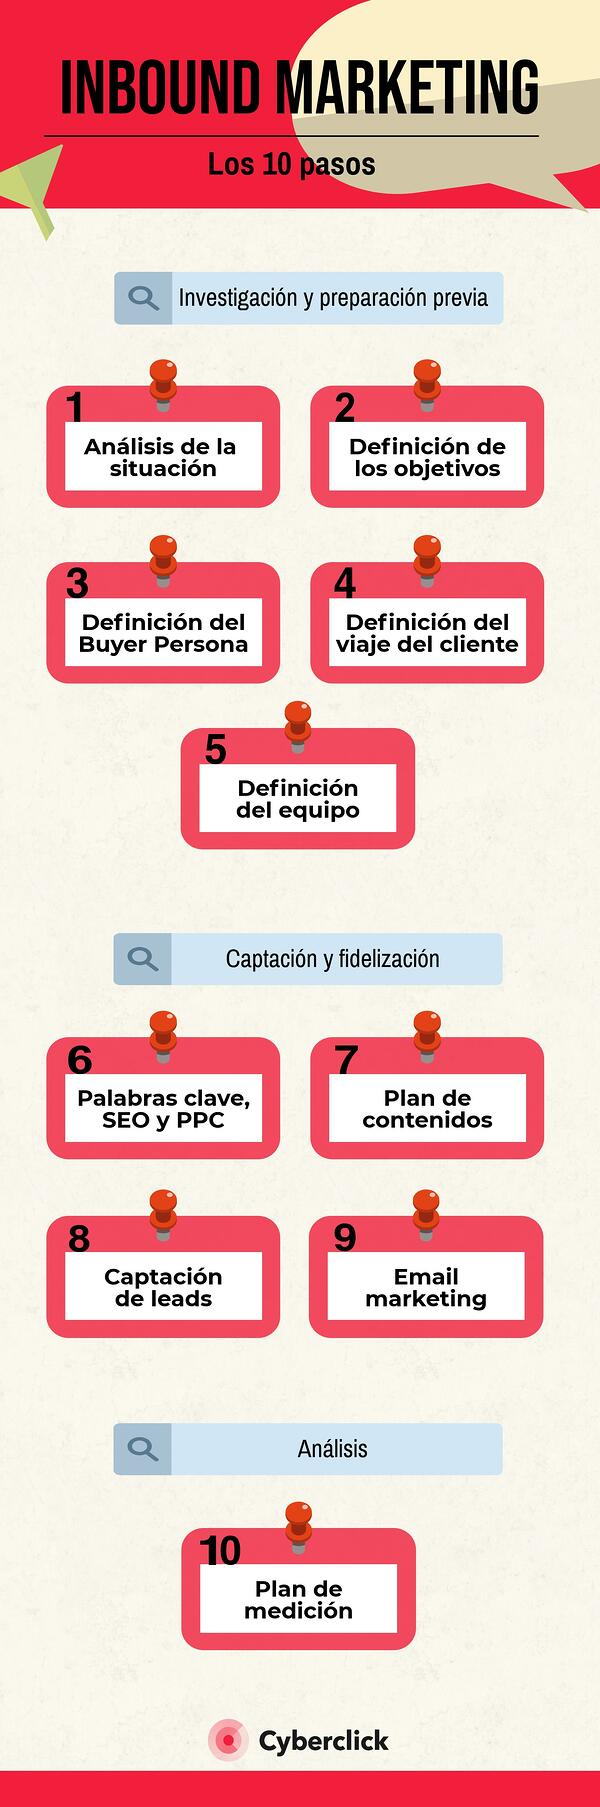 Estrategia de inbound marketing: los 10 pasos imprescindibles